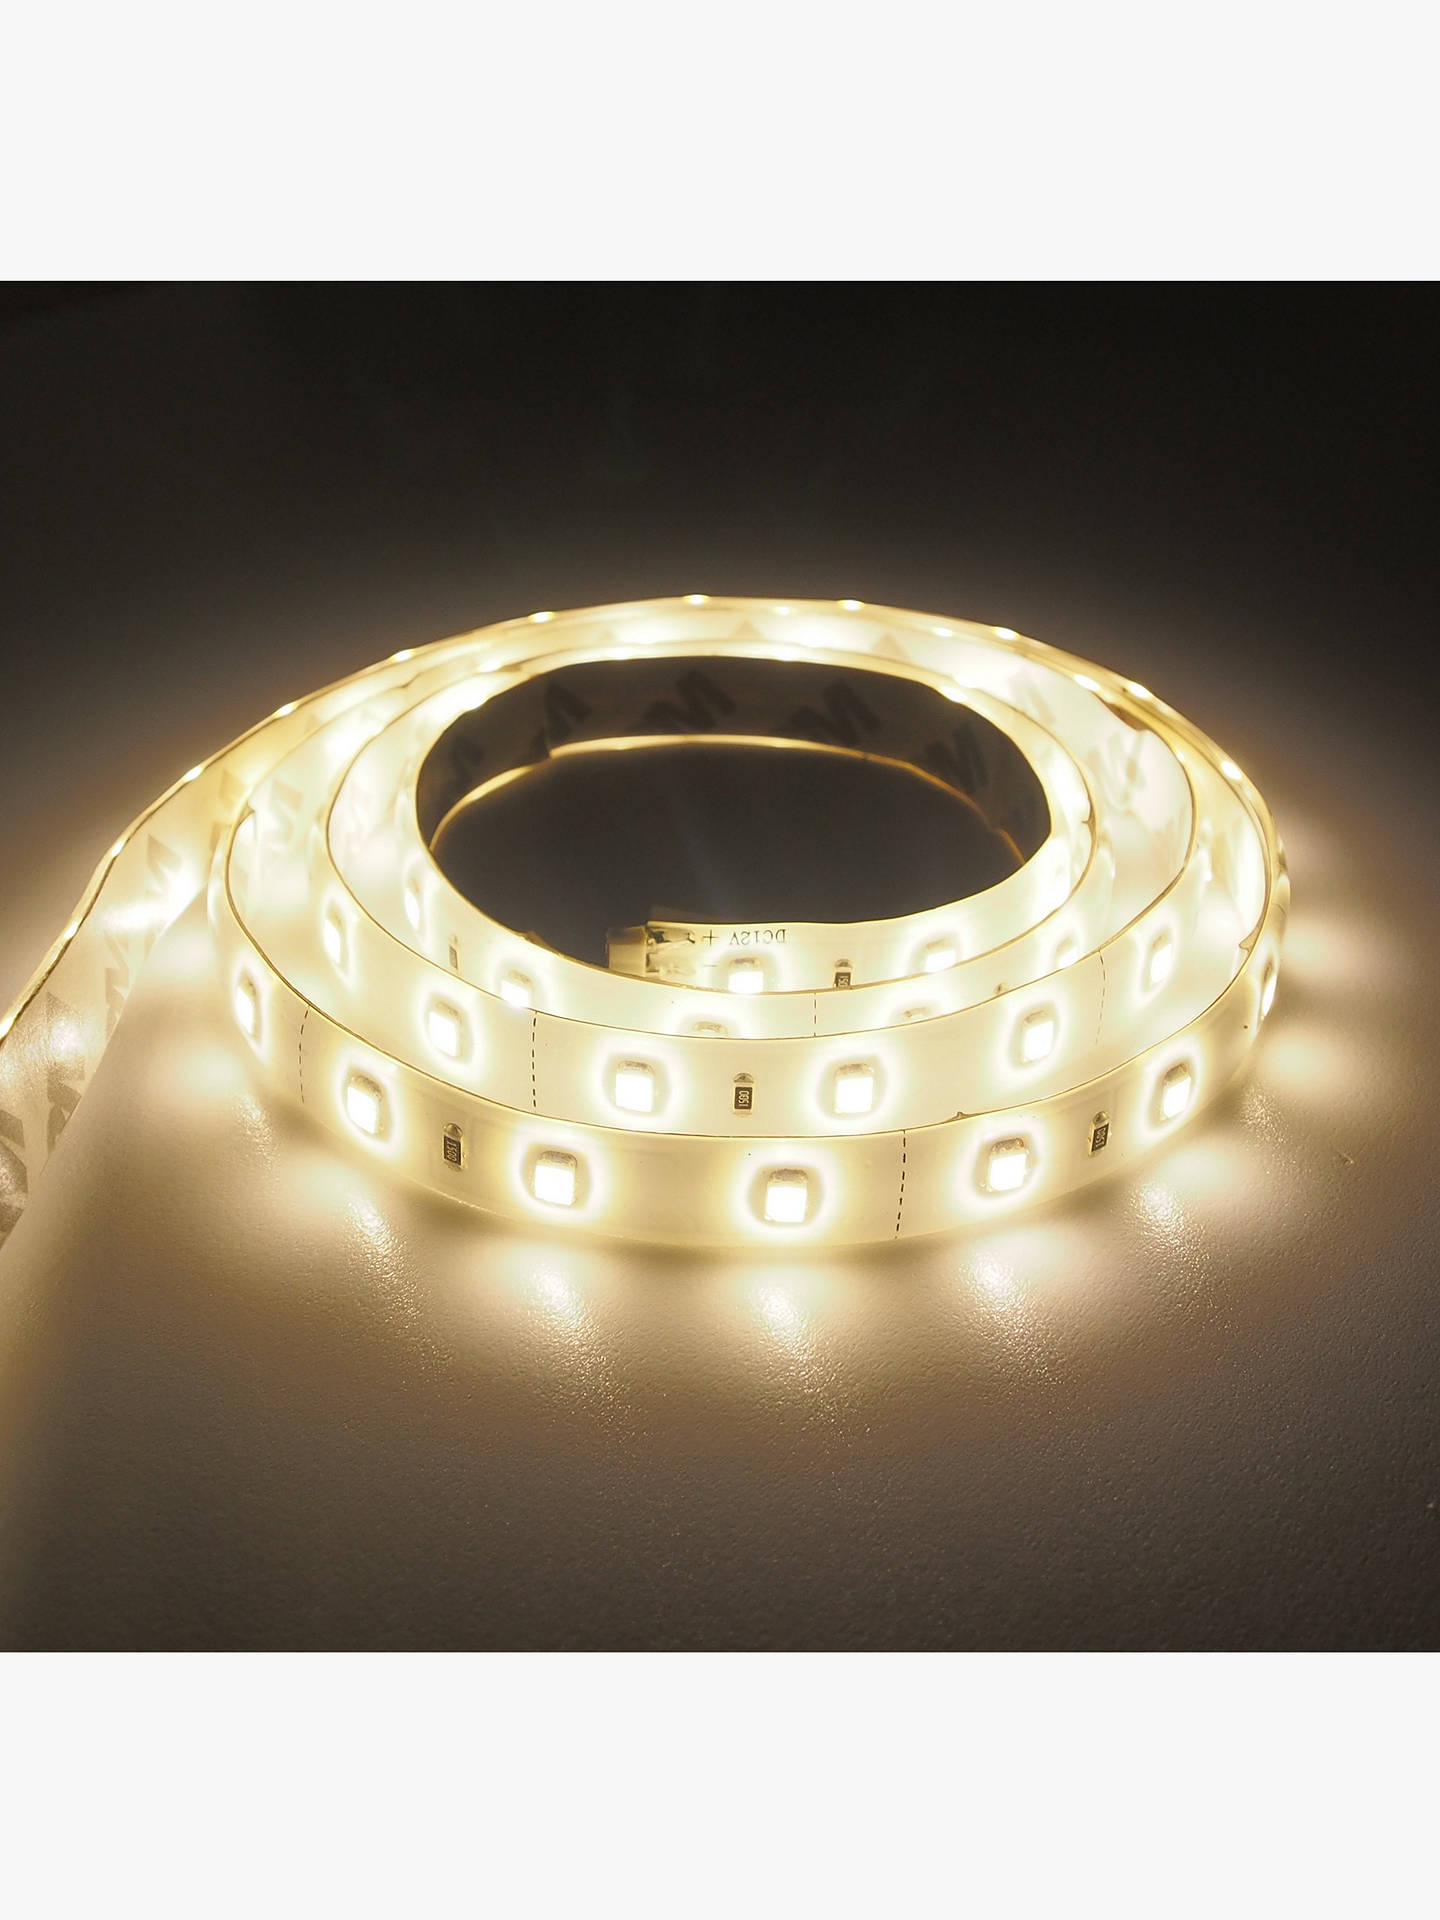 Buy John Lewis & Partners SY7340A 2m LED Strip Lights, Warm White Online at johnlewis.com